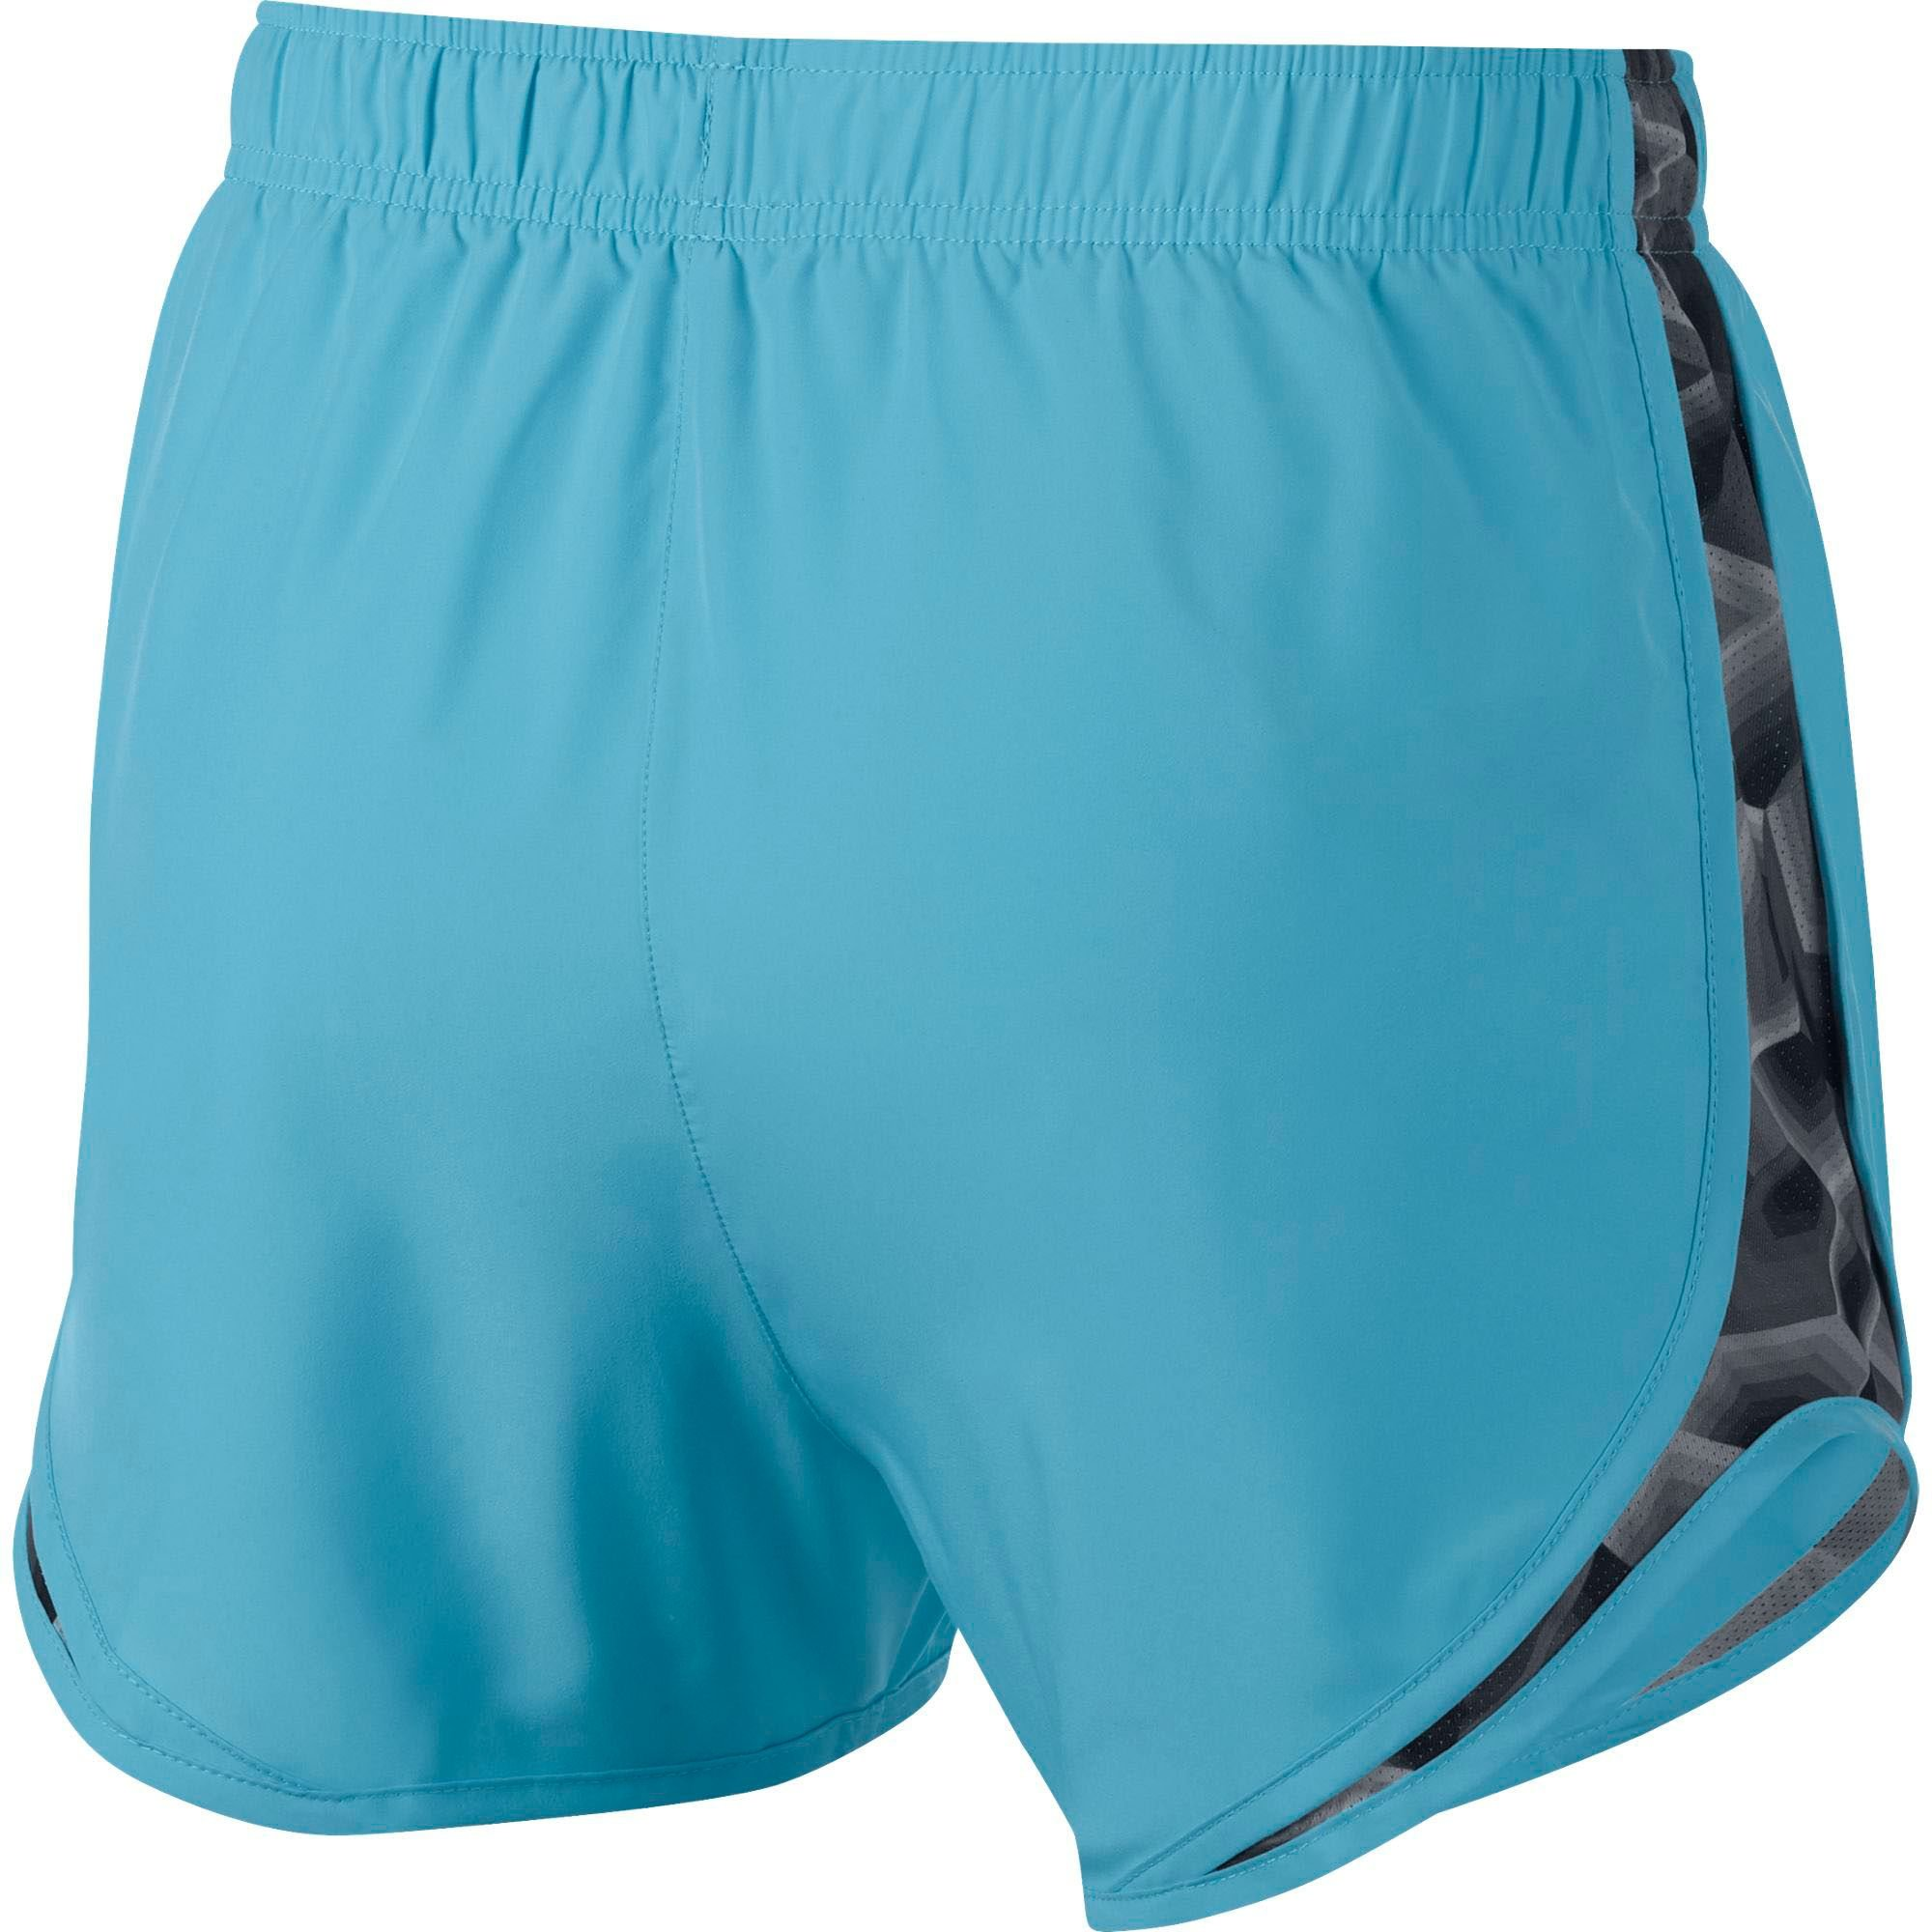 Nike Women's 3'' Dry Tempo Running Shorts(Polarized Blue/Stealth/Wg, M) by Nike (Image #2)